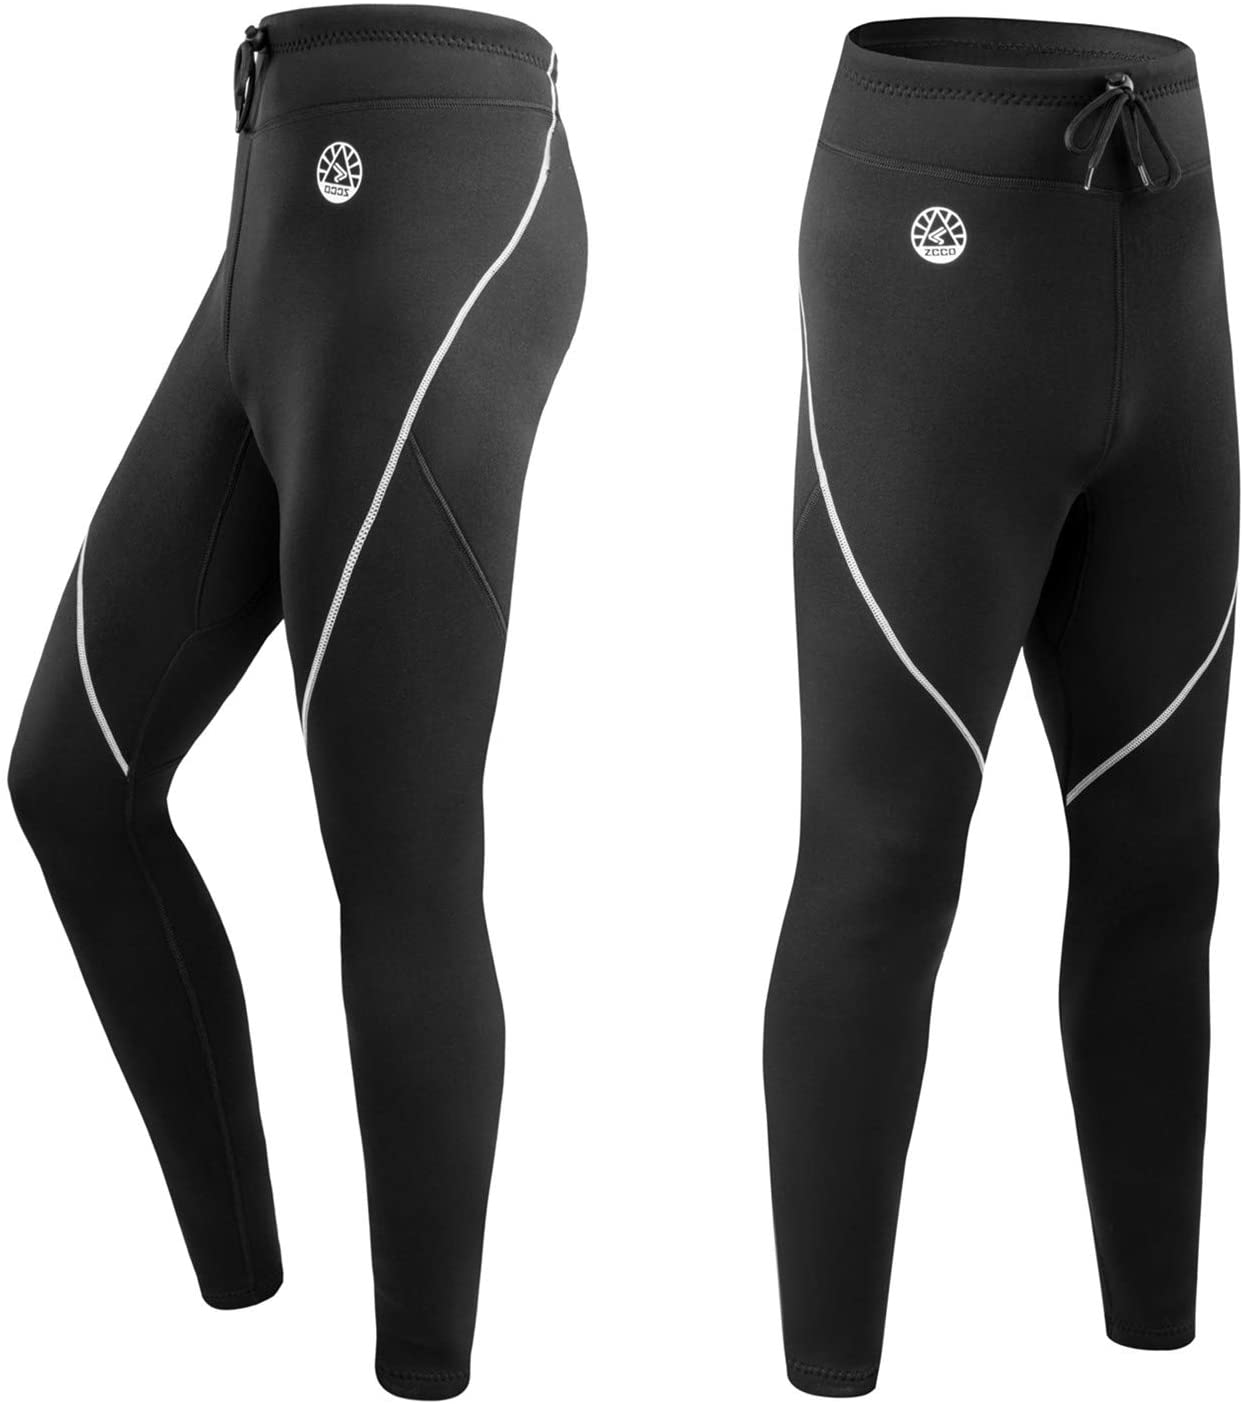 ZCCO1 Men's Wetsuit Pants, 1.5mm Neoprene Long Pants for Surfing Kayaking Swimming Diving Canoeing